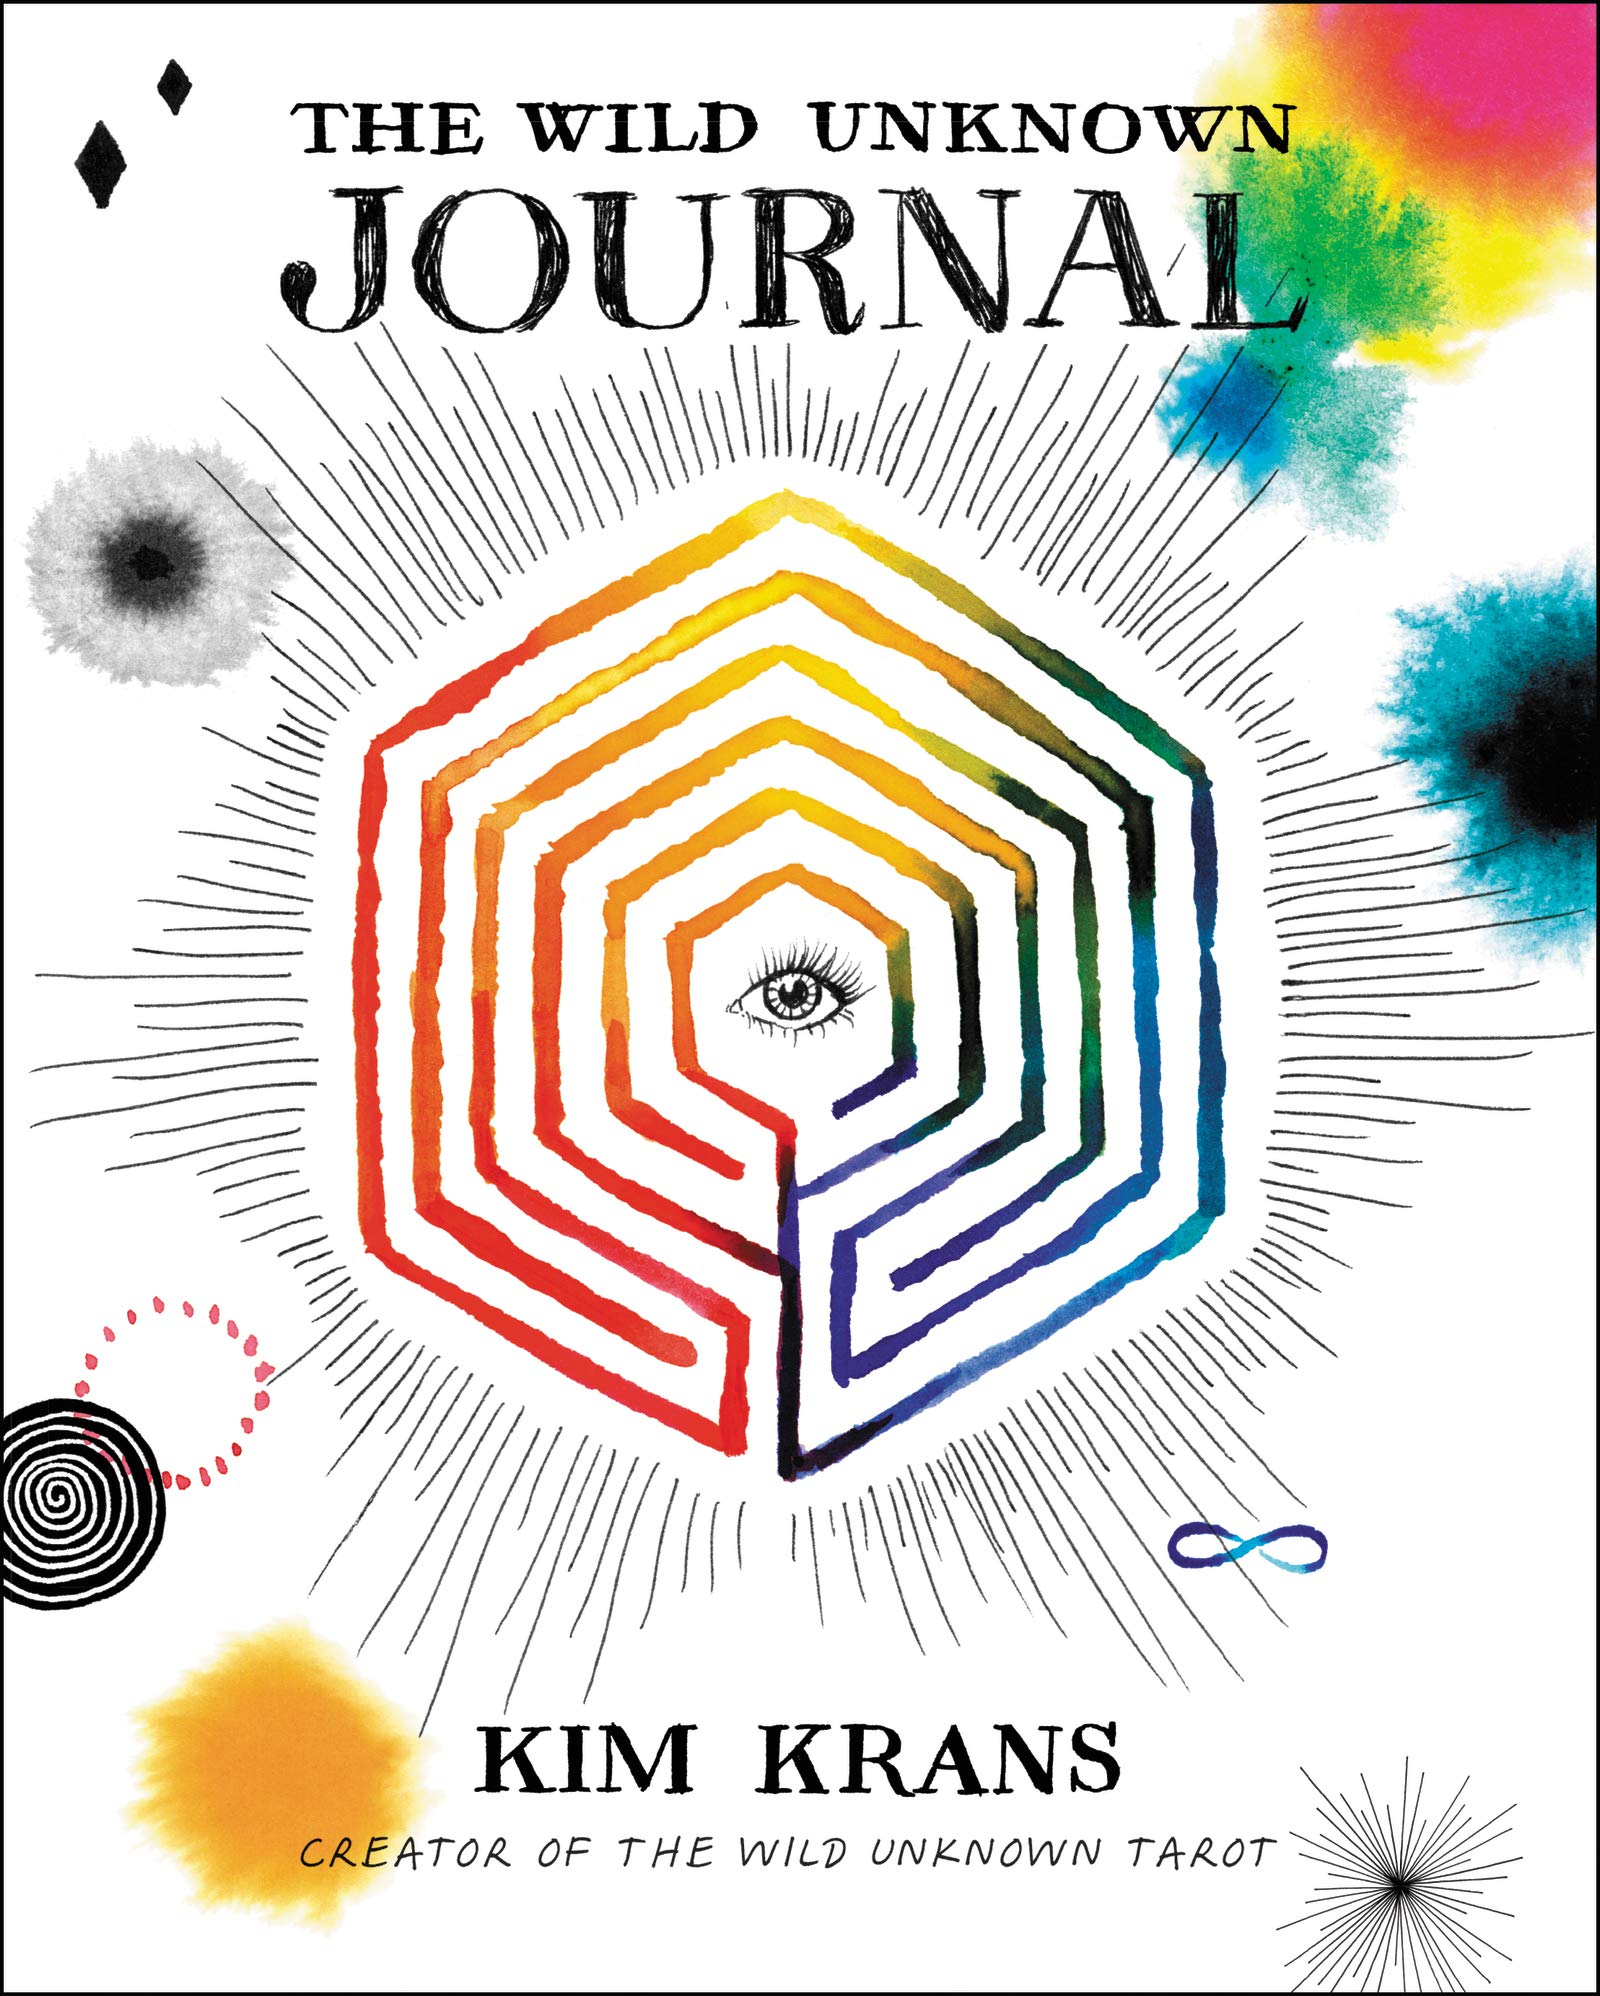 The Wild Unknown Journal  by Kim Krans